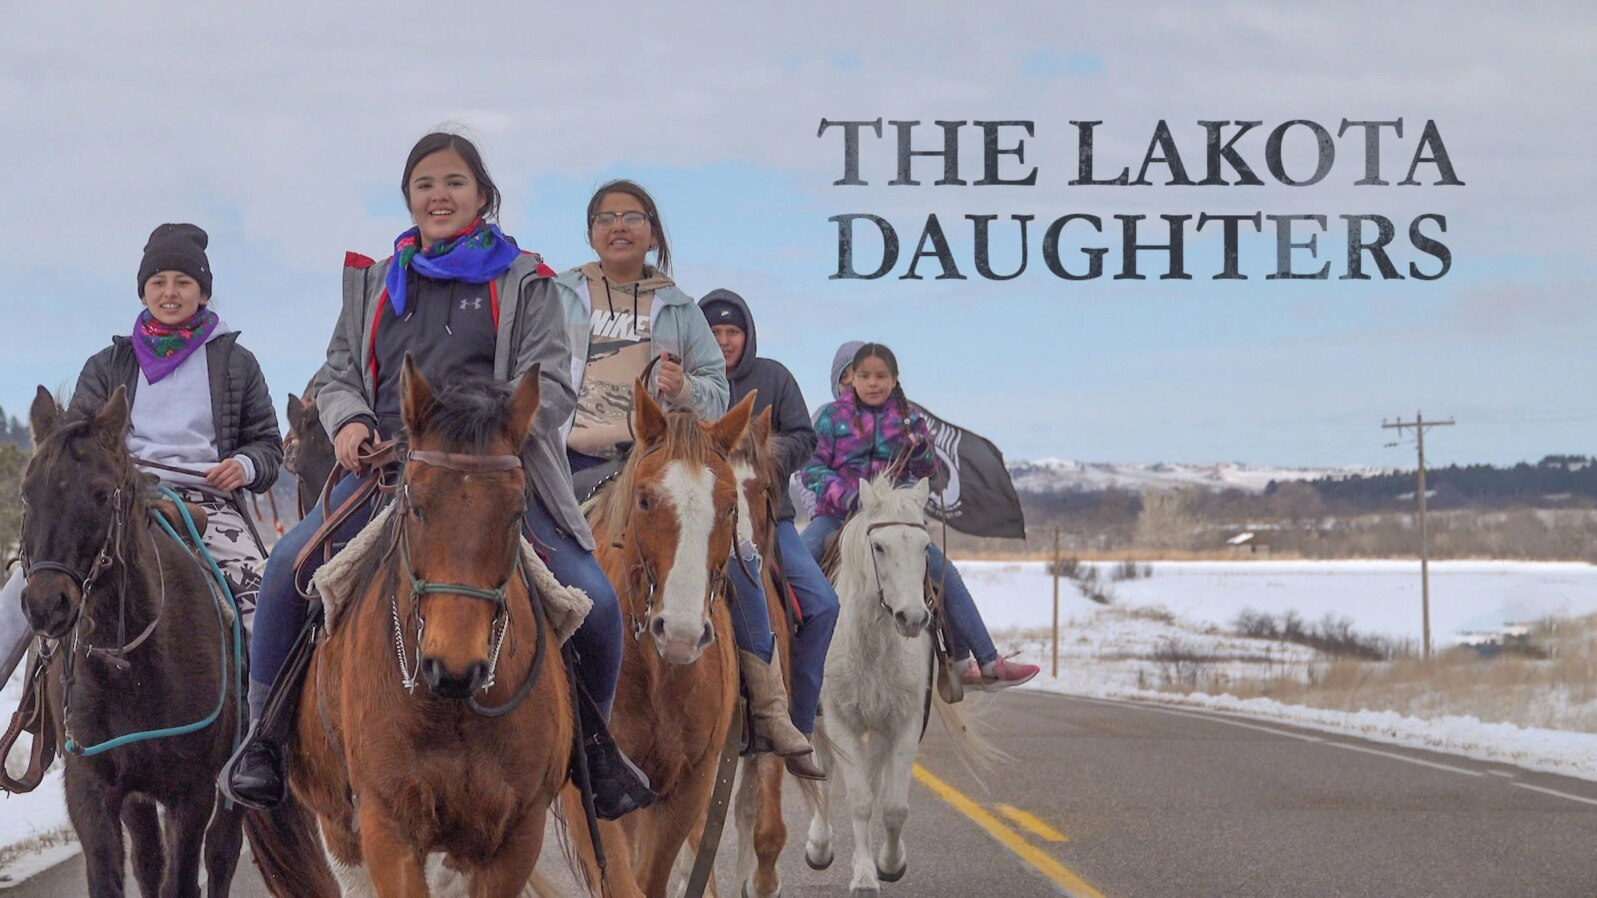 Voice of America documentary on Native American women wins top prize at Loyola Feminist Film Festival